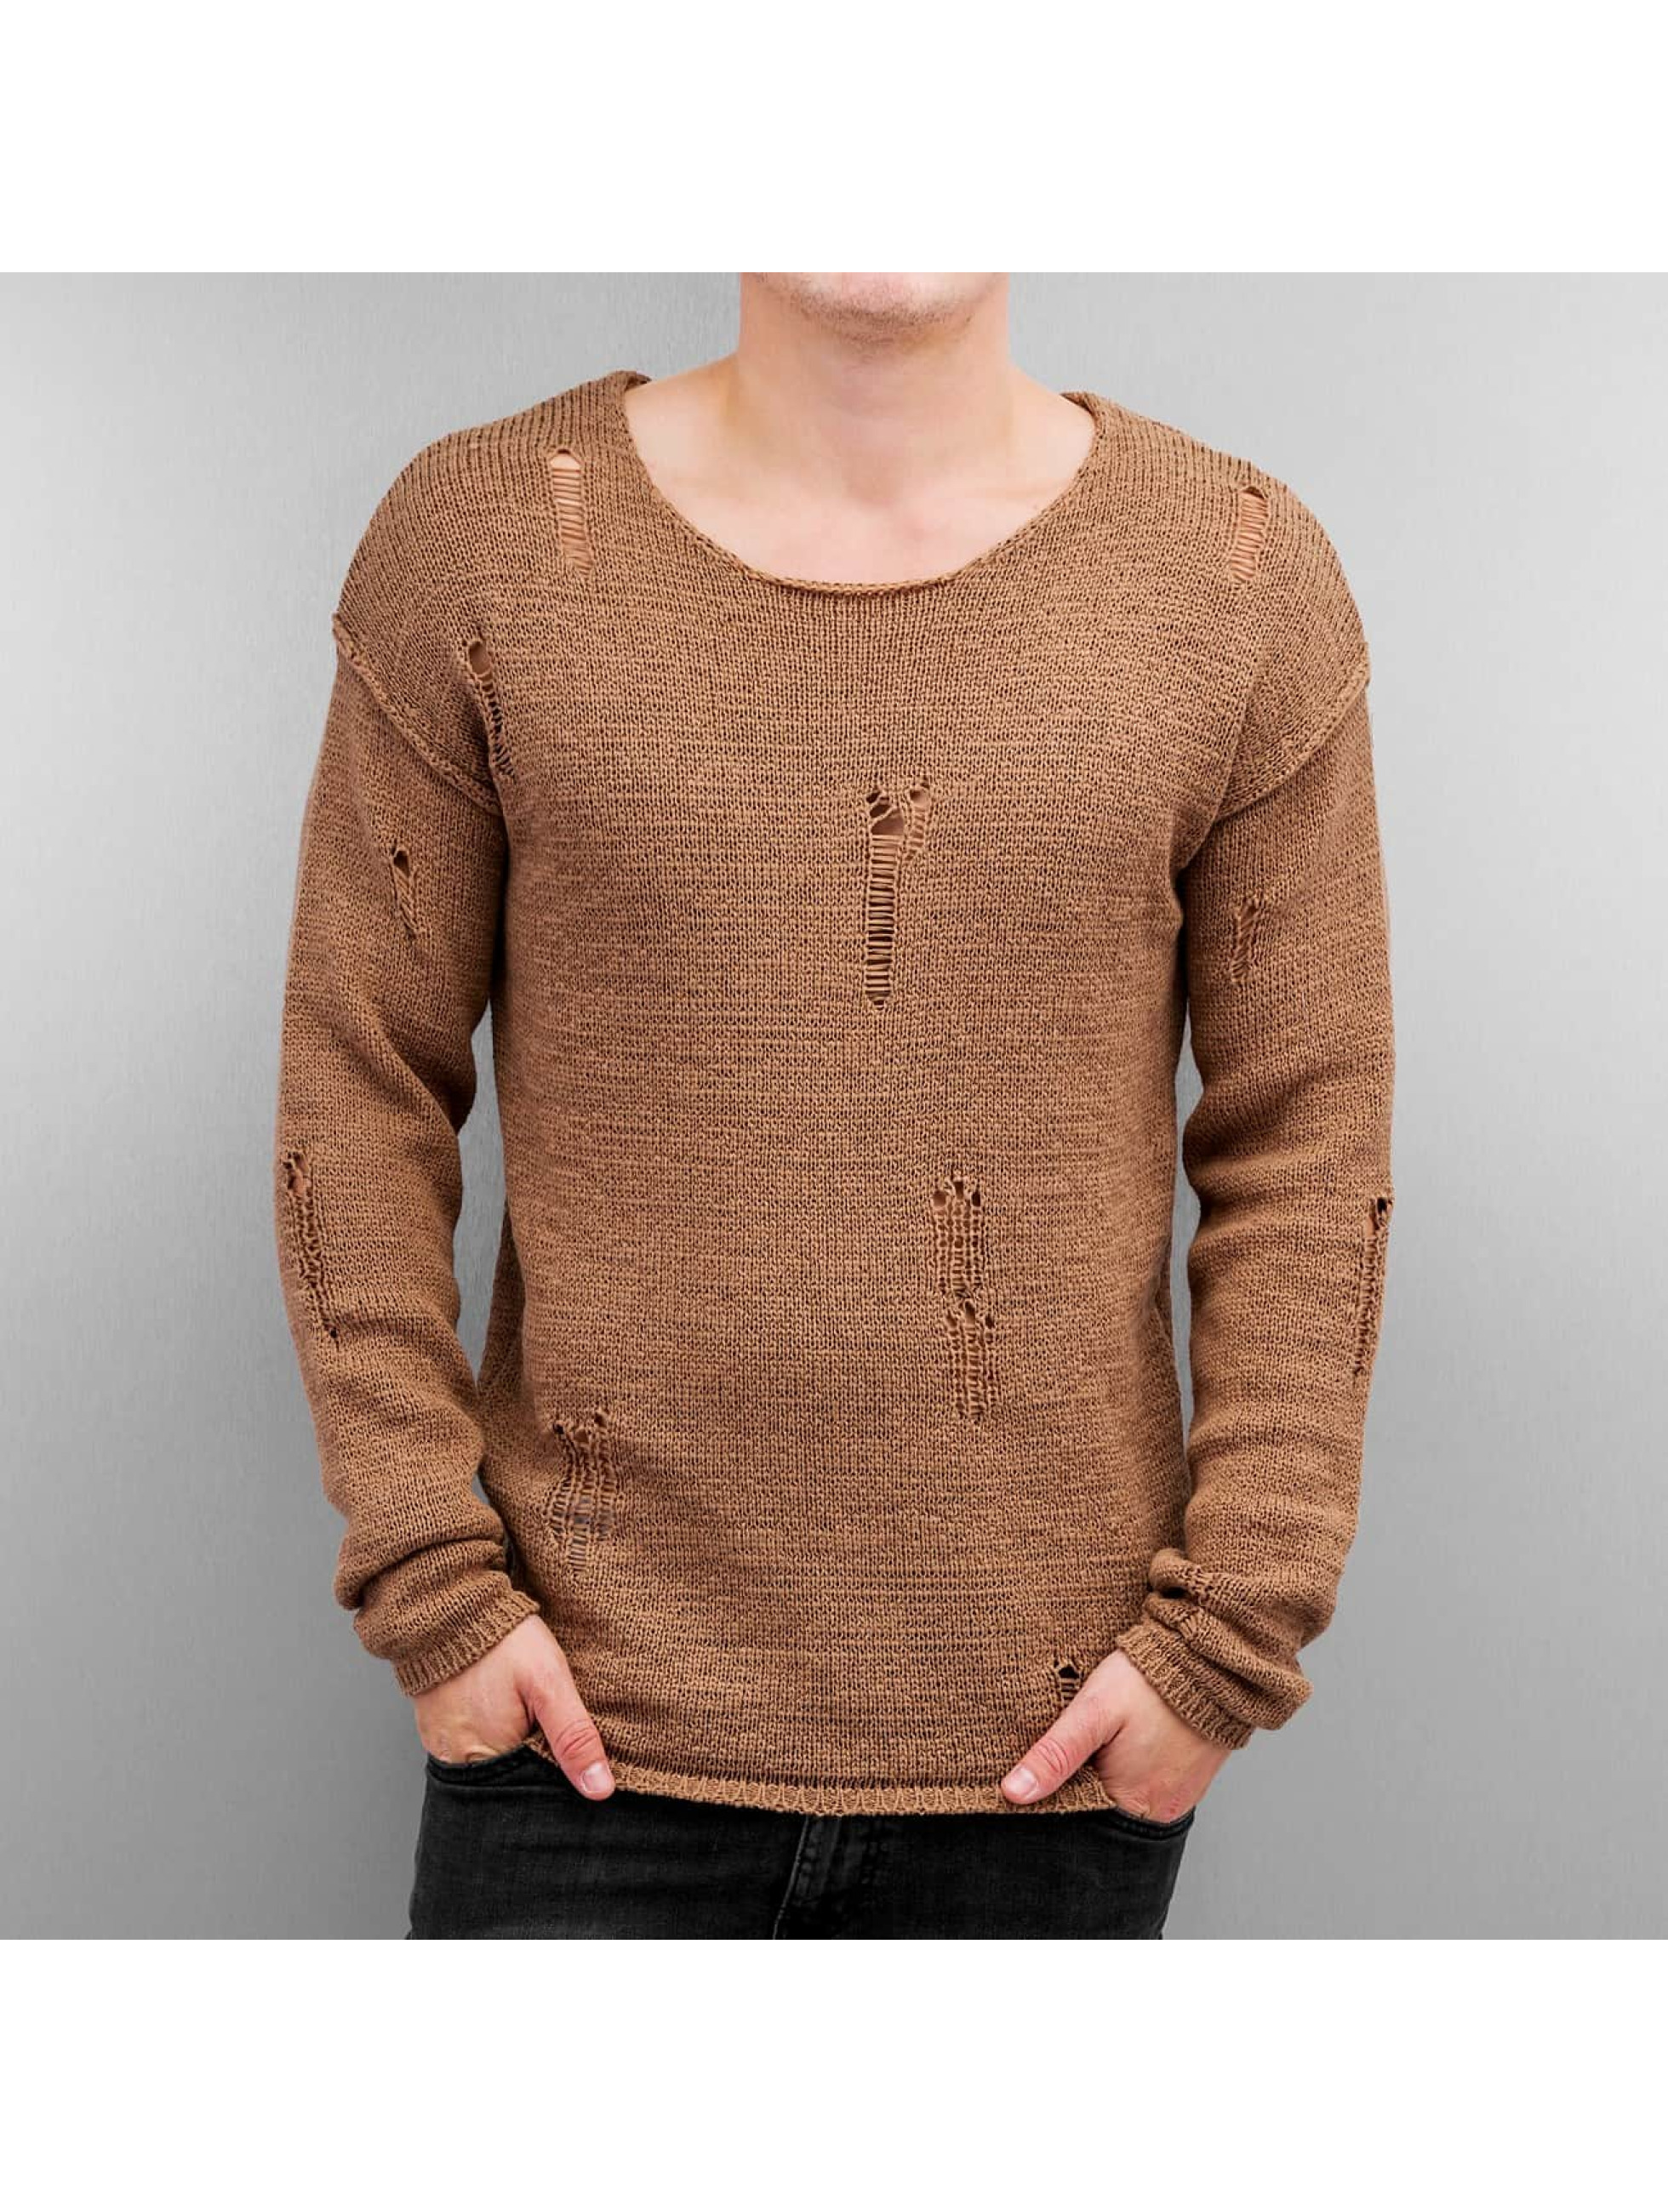 Jack & Jones Männer Pullover 12115685 in beige